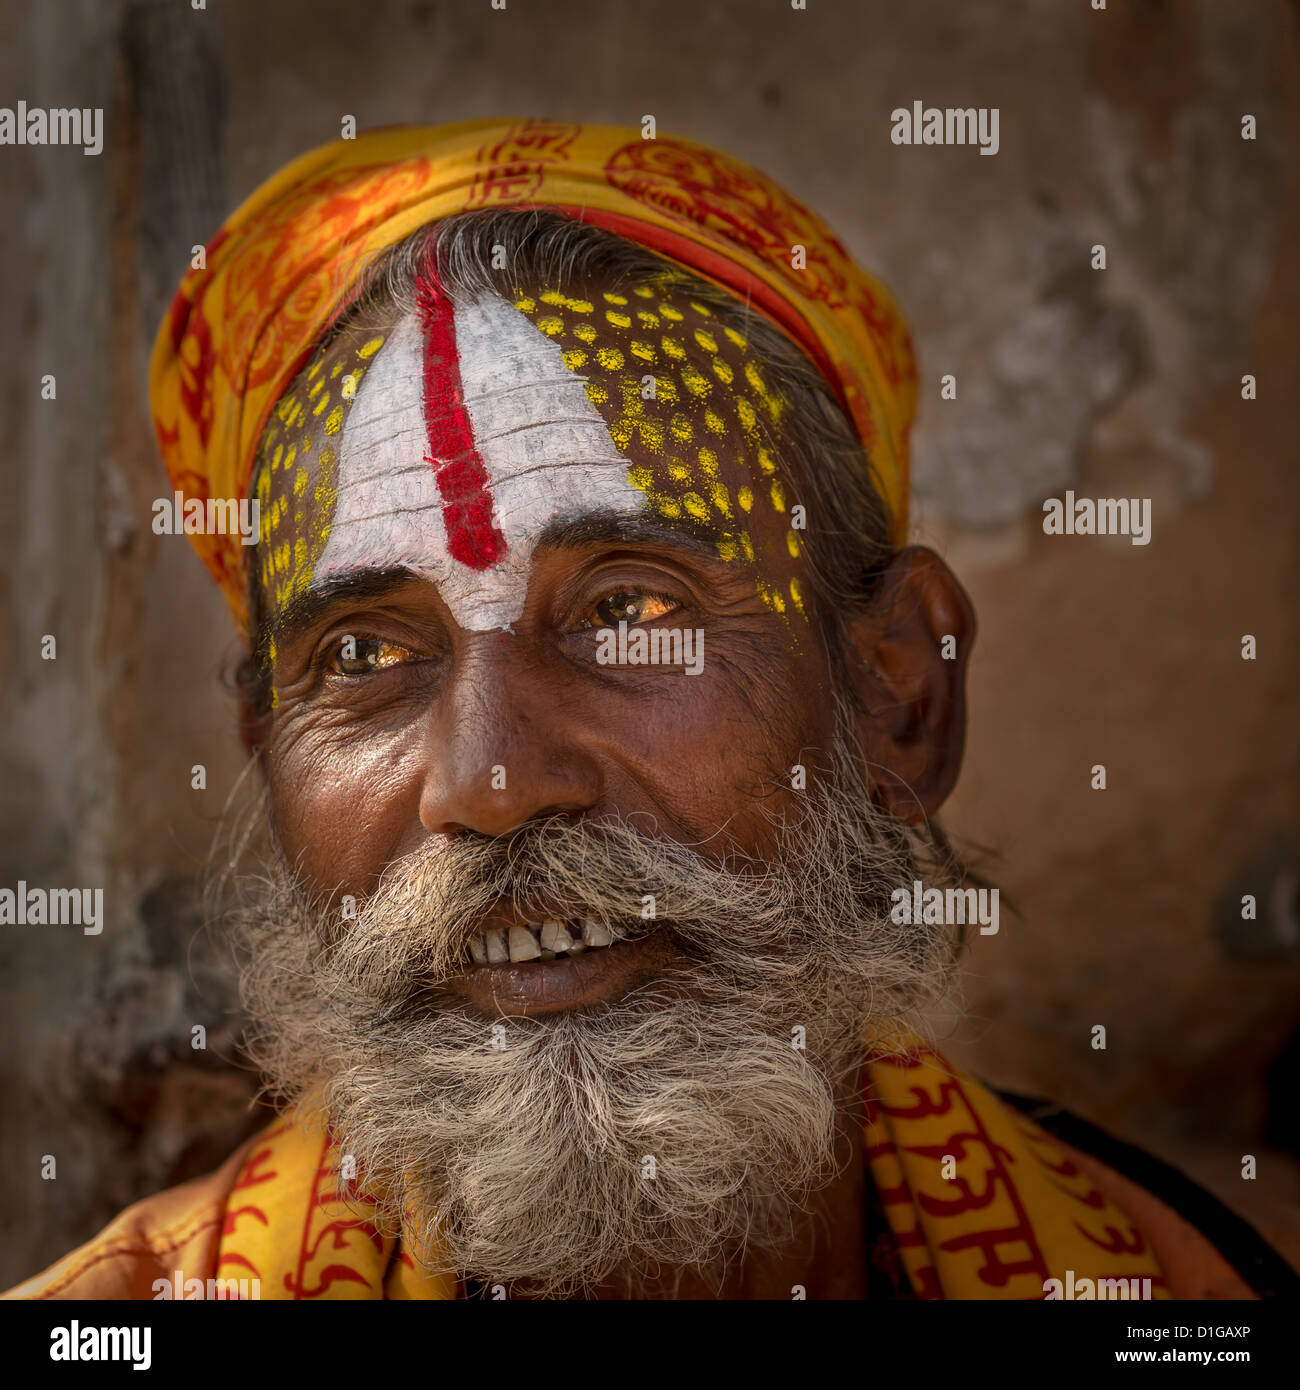 Portrait of a Sadhu, holy man, Pashupatinath, Kathmandu, Nepal - Stock Image